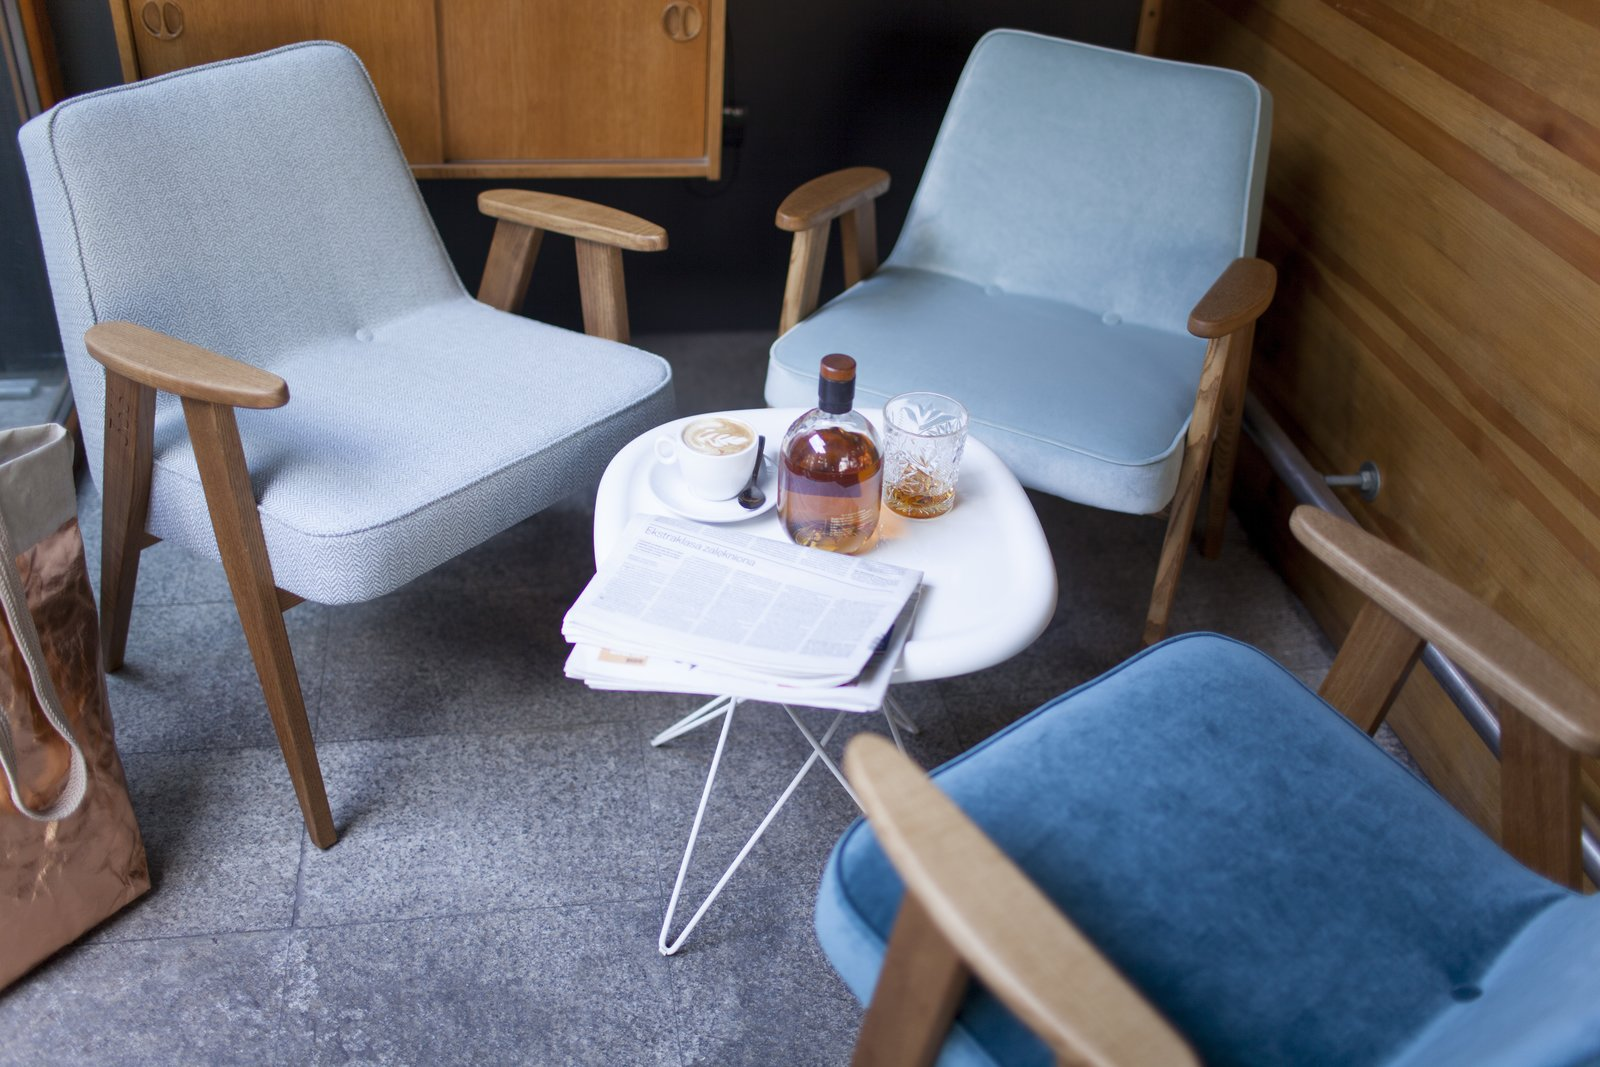 An instant success upon its 1962 release, Chierowski's 366 Easy Chair was a staple seen in homes, cafes, offices, and restaurants throughout the Eastern Bloc for nearly three decades.  100+ Best Modern Seating Designs from A Look At Józef Chierowski, the Polish Midcentury Design Icon You've Probably Never Heard Of